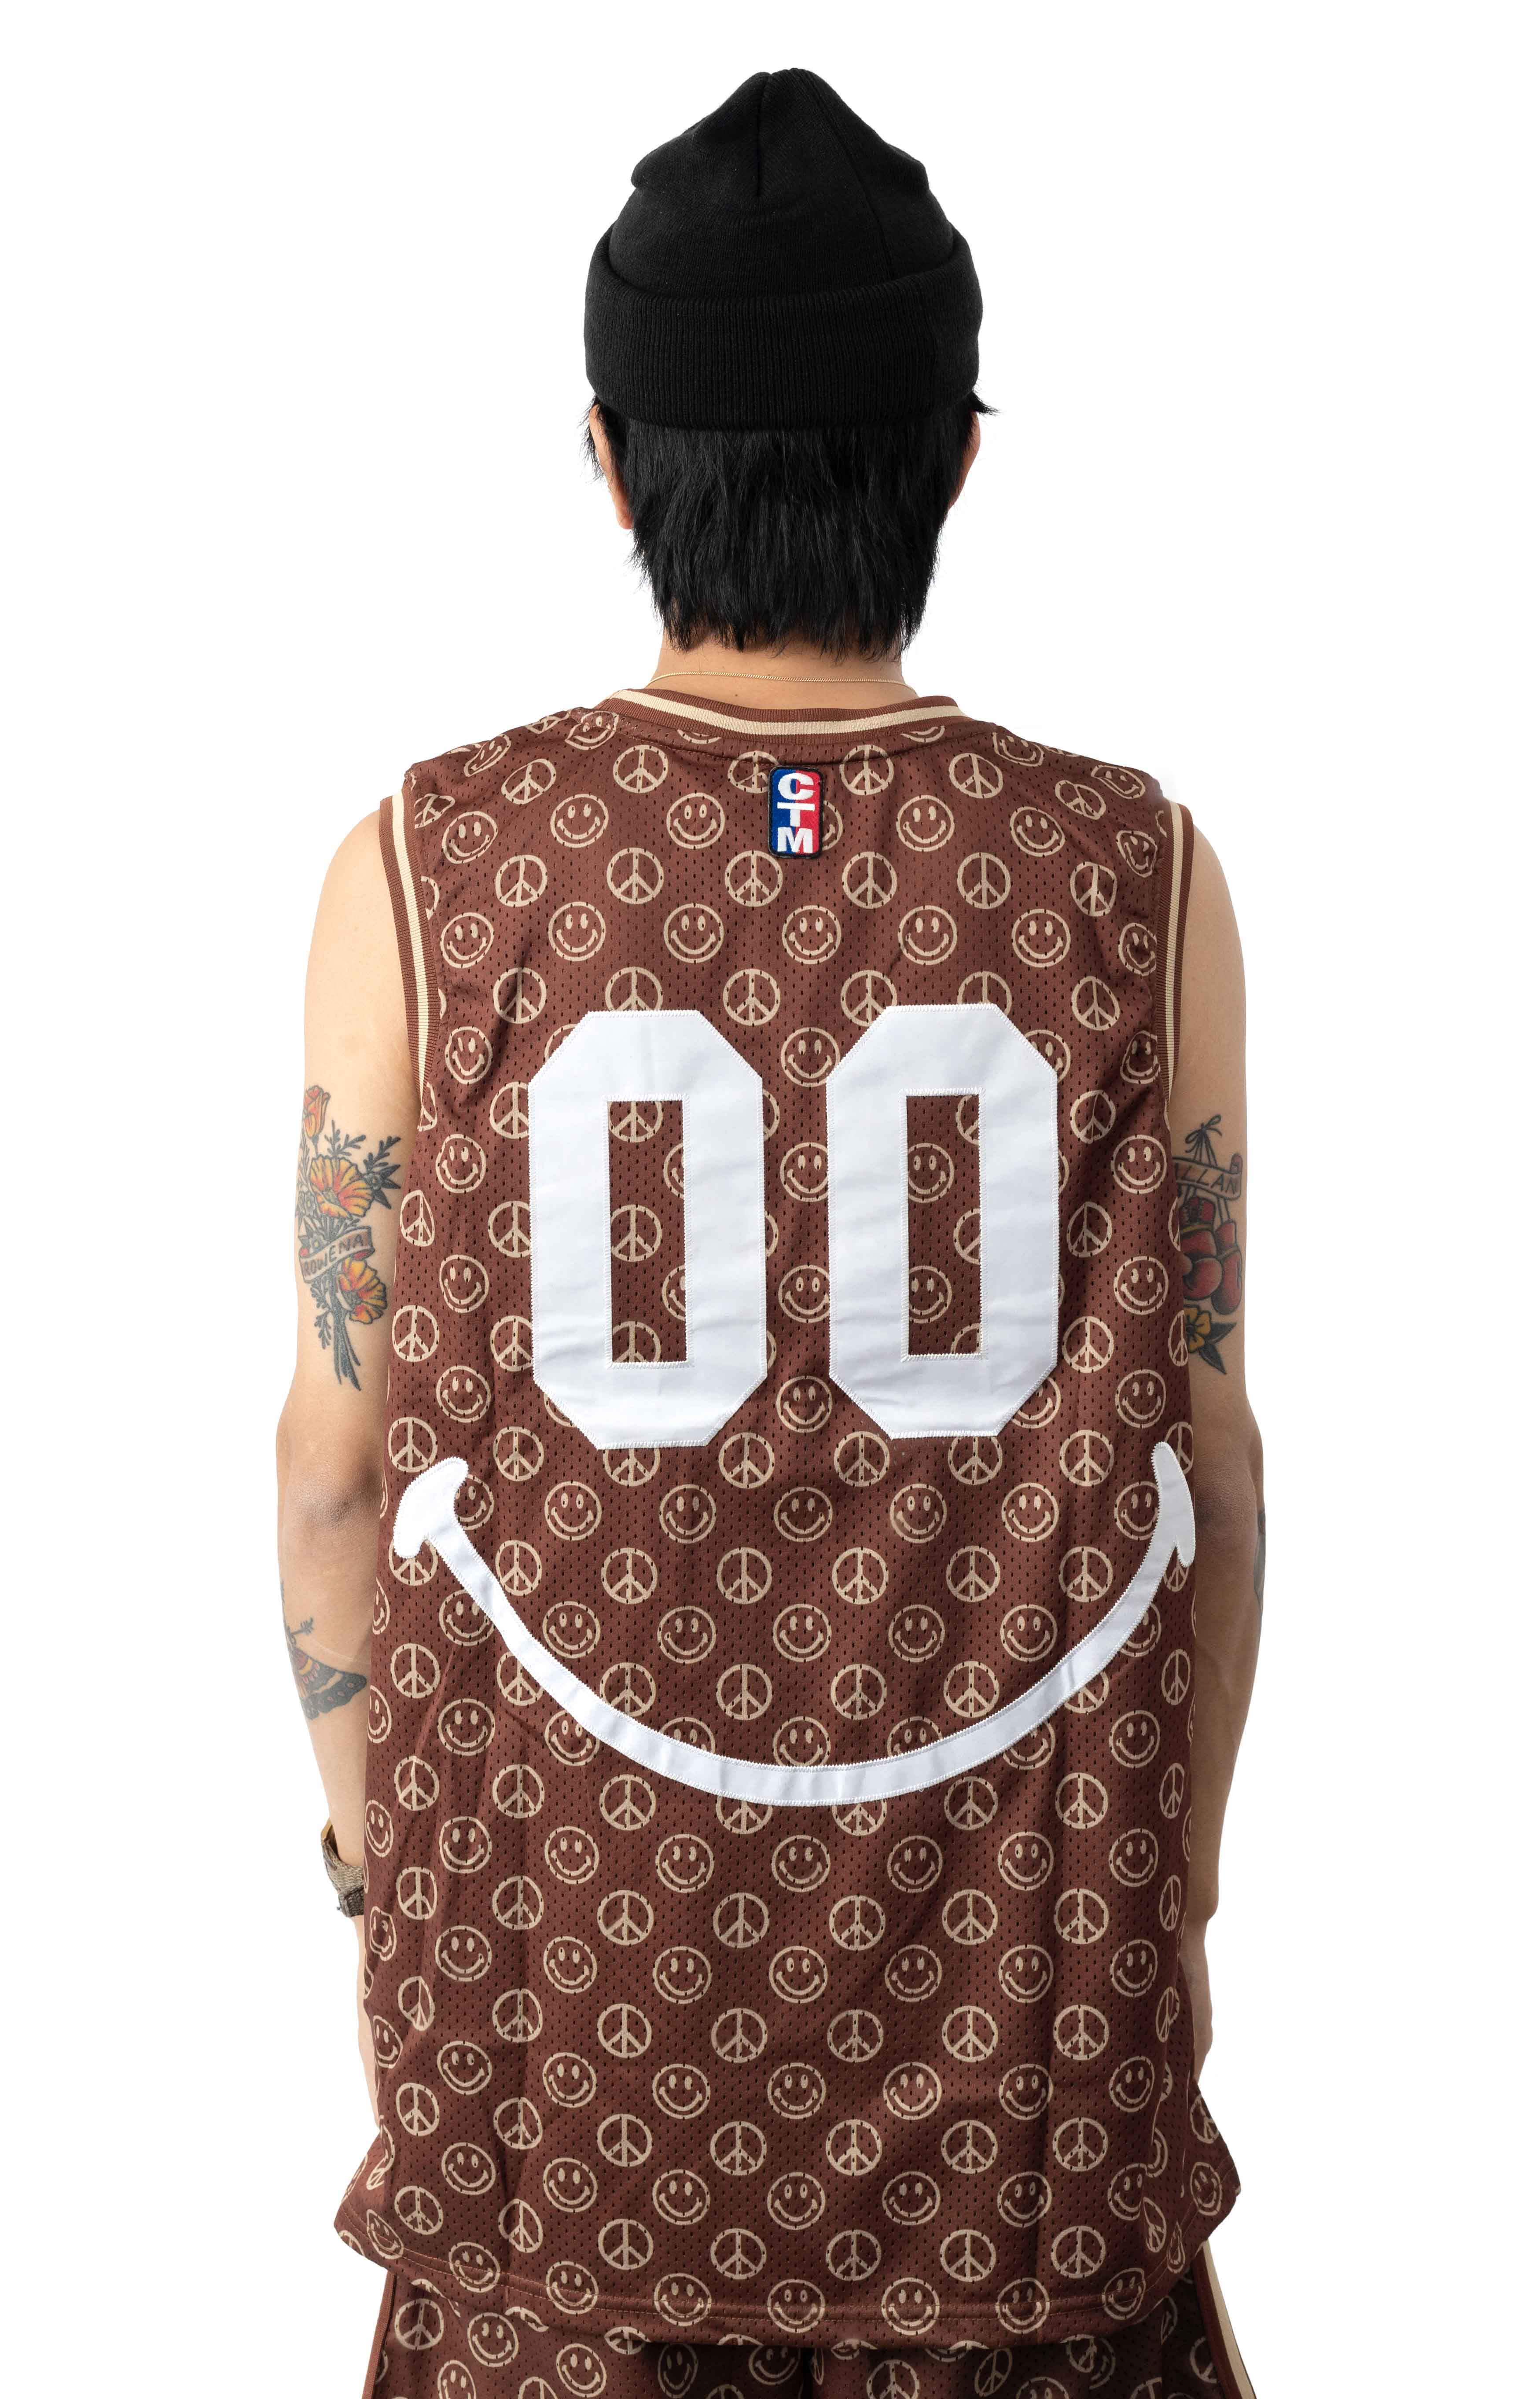 Smiley Cabana Basketball Jersey 3